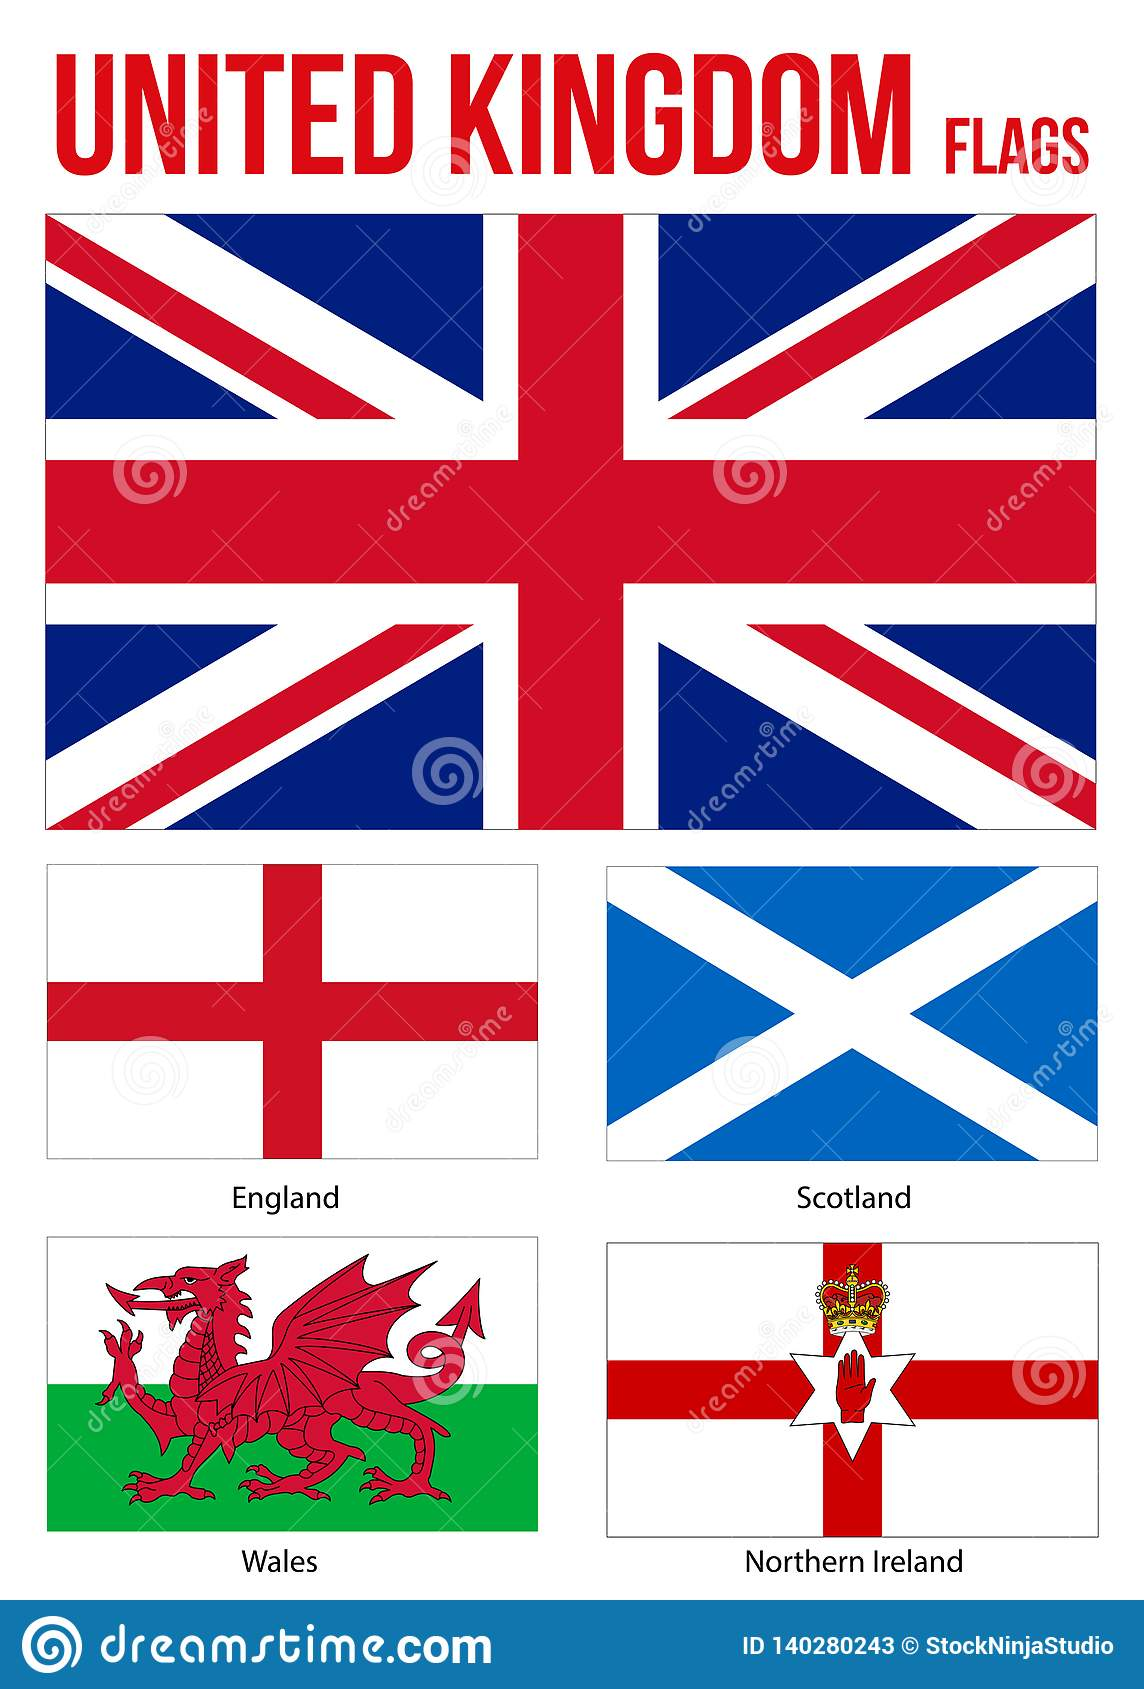 United Kingdom Countries Flags Collection Flag Of England